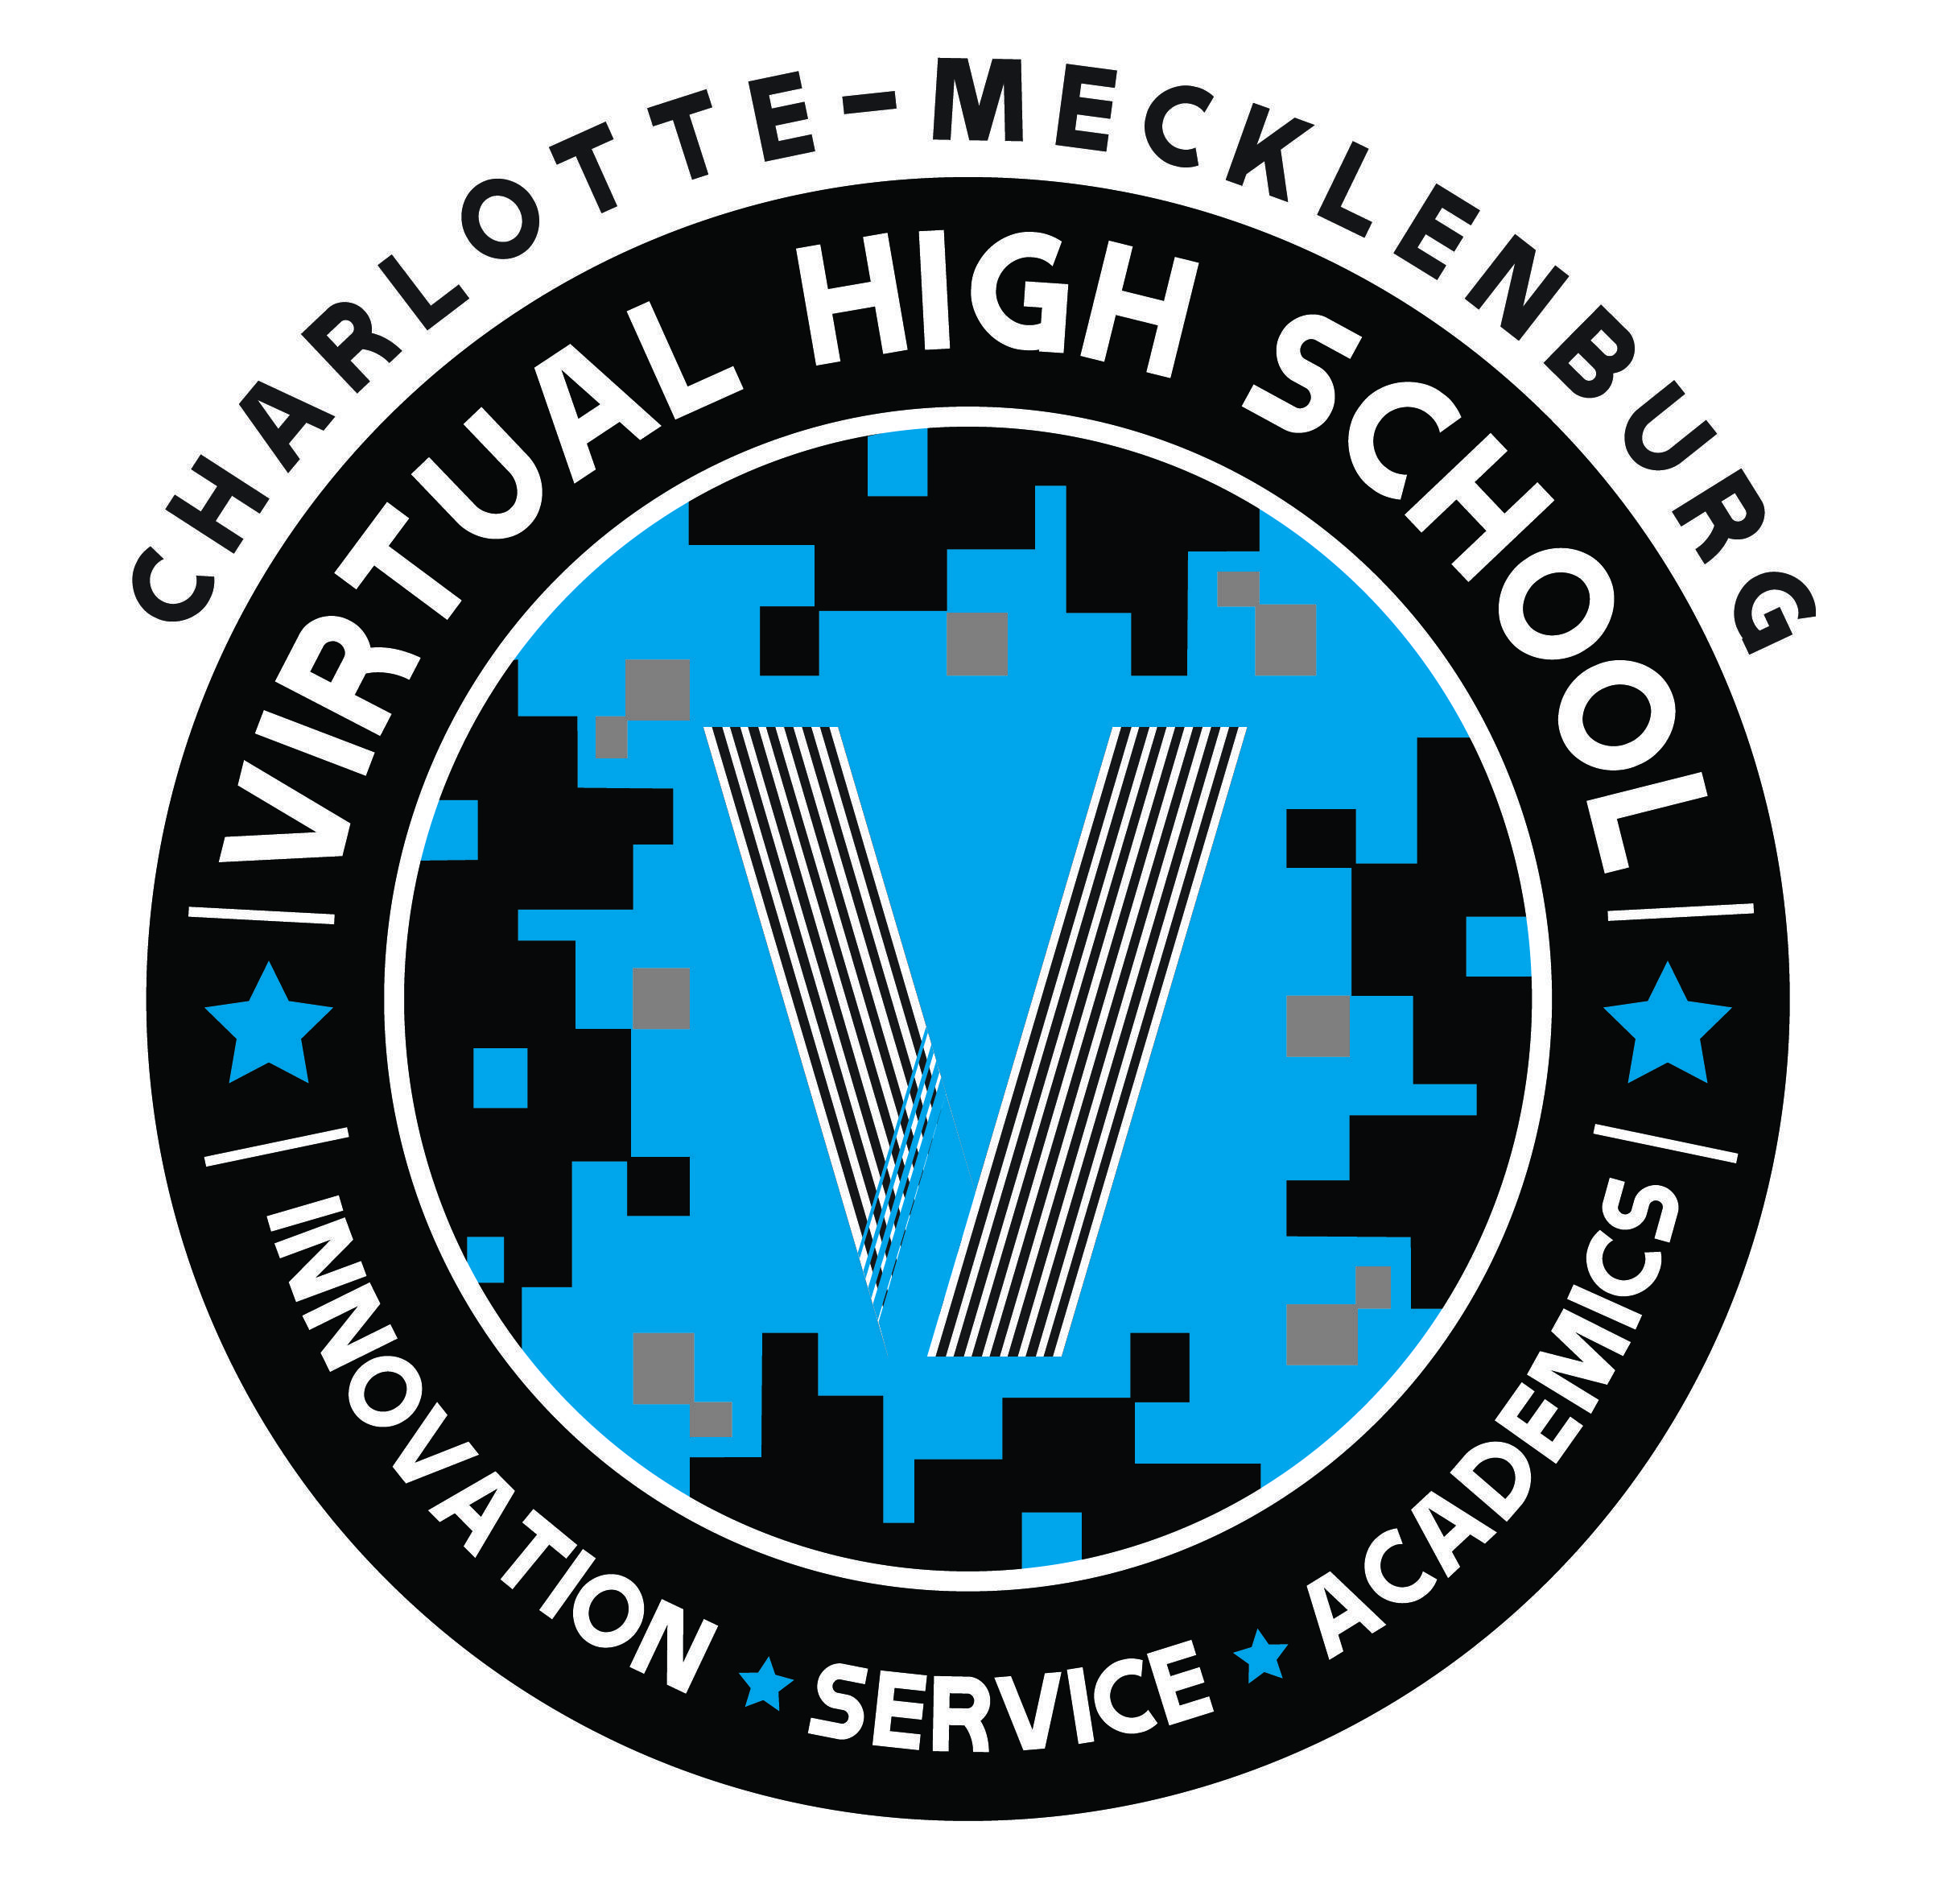 Charlotte Mecklenburg Virtual High School Academic Seal